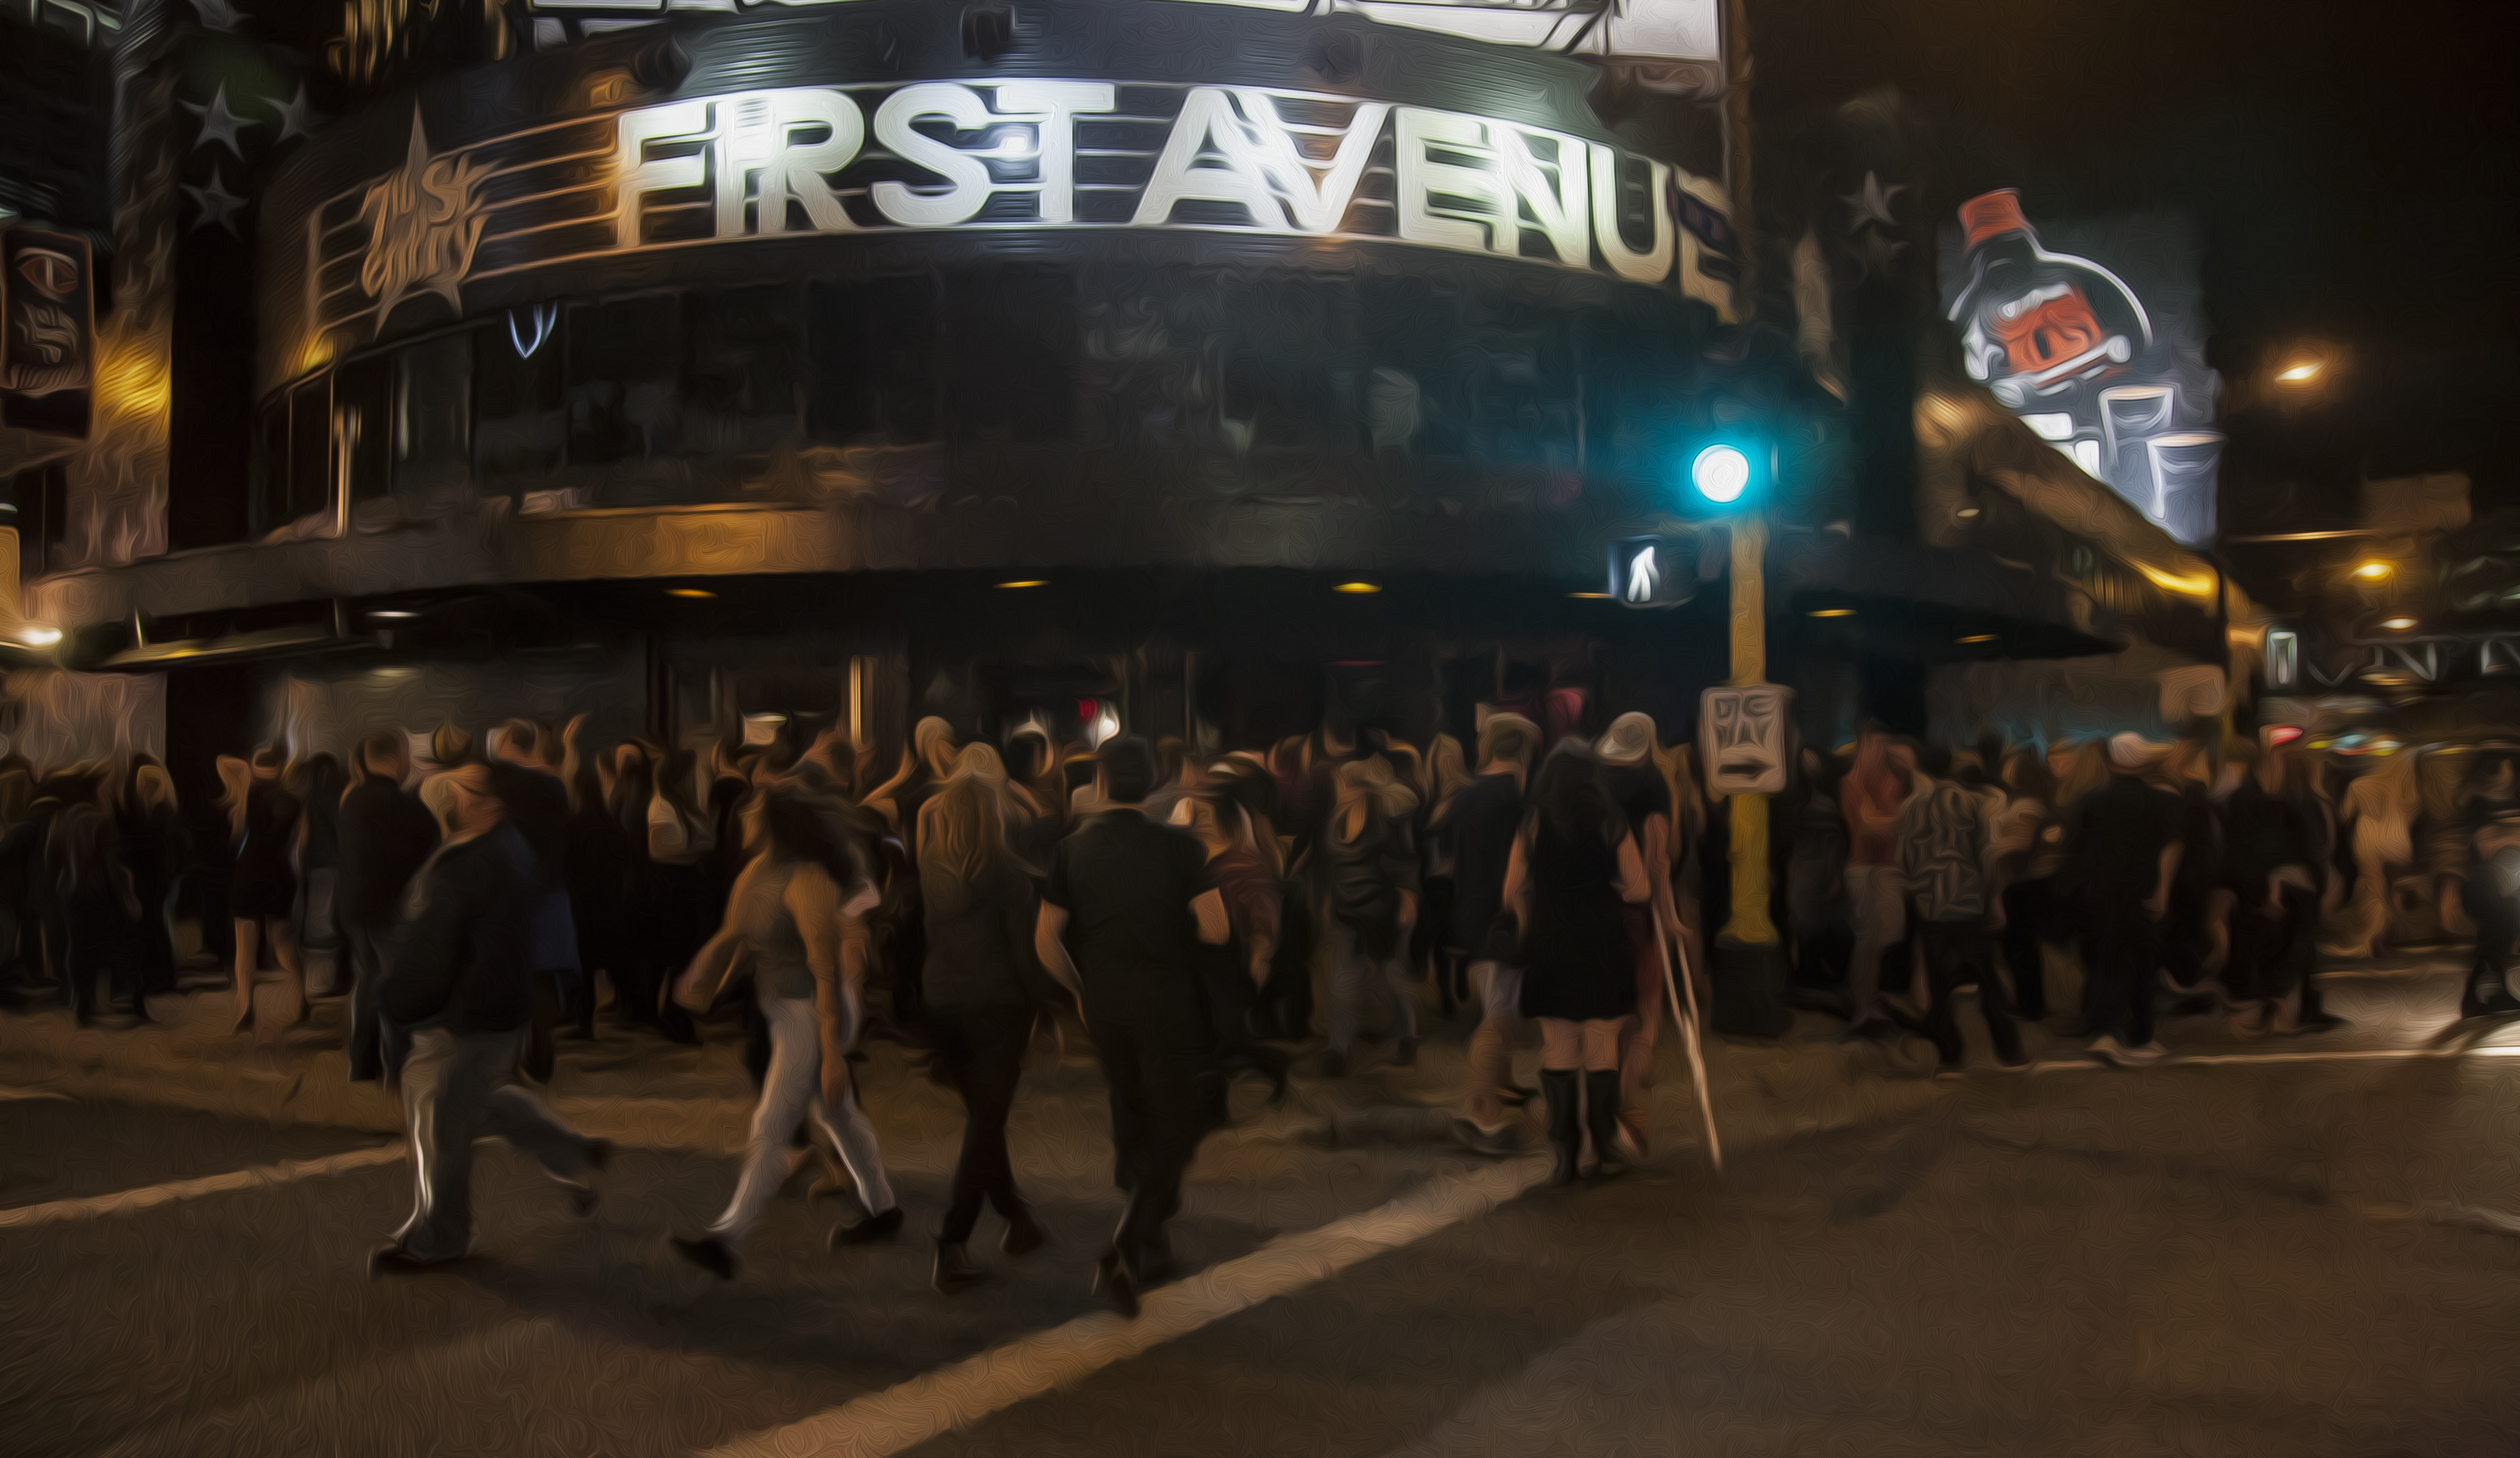 First Ave